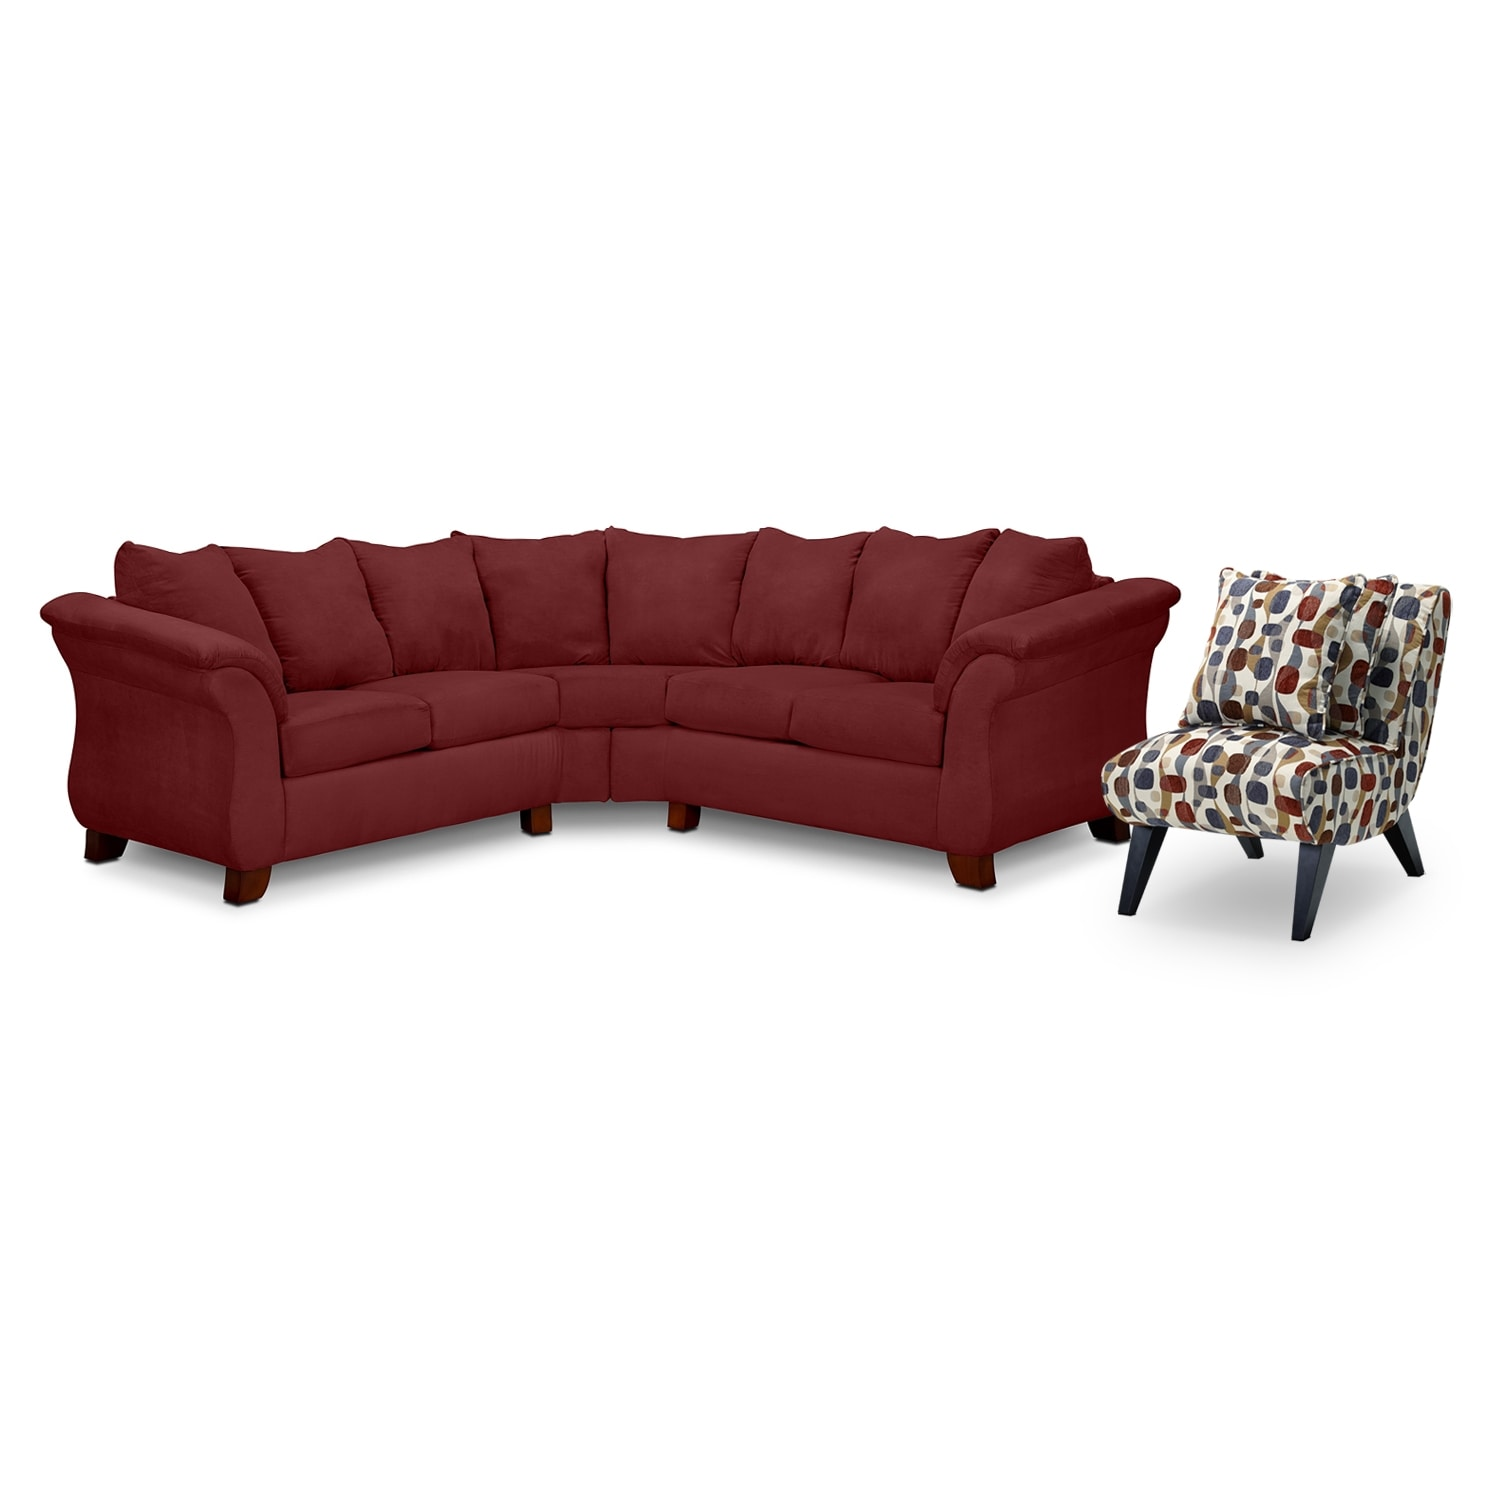 Living Room Furniture - Adrian 2-Piece Sectional and Accent Chair Set - Red